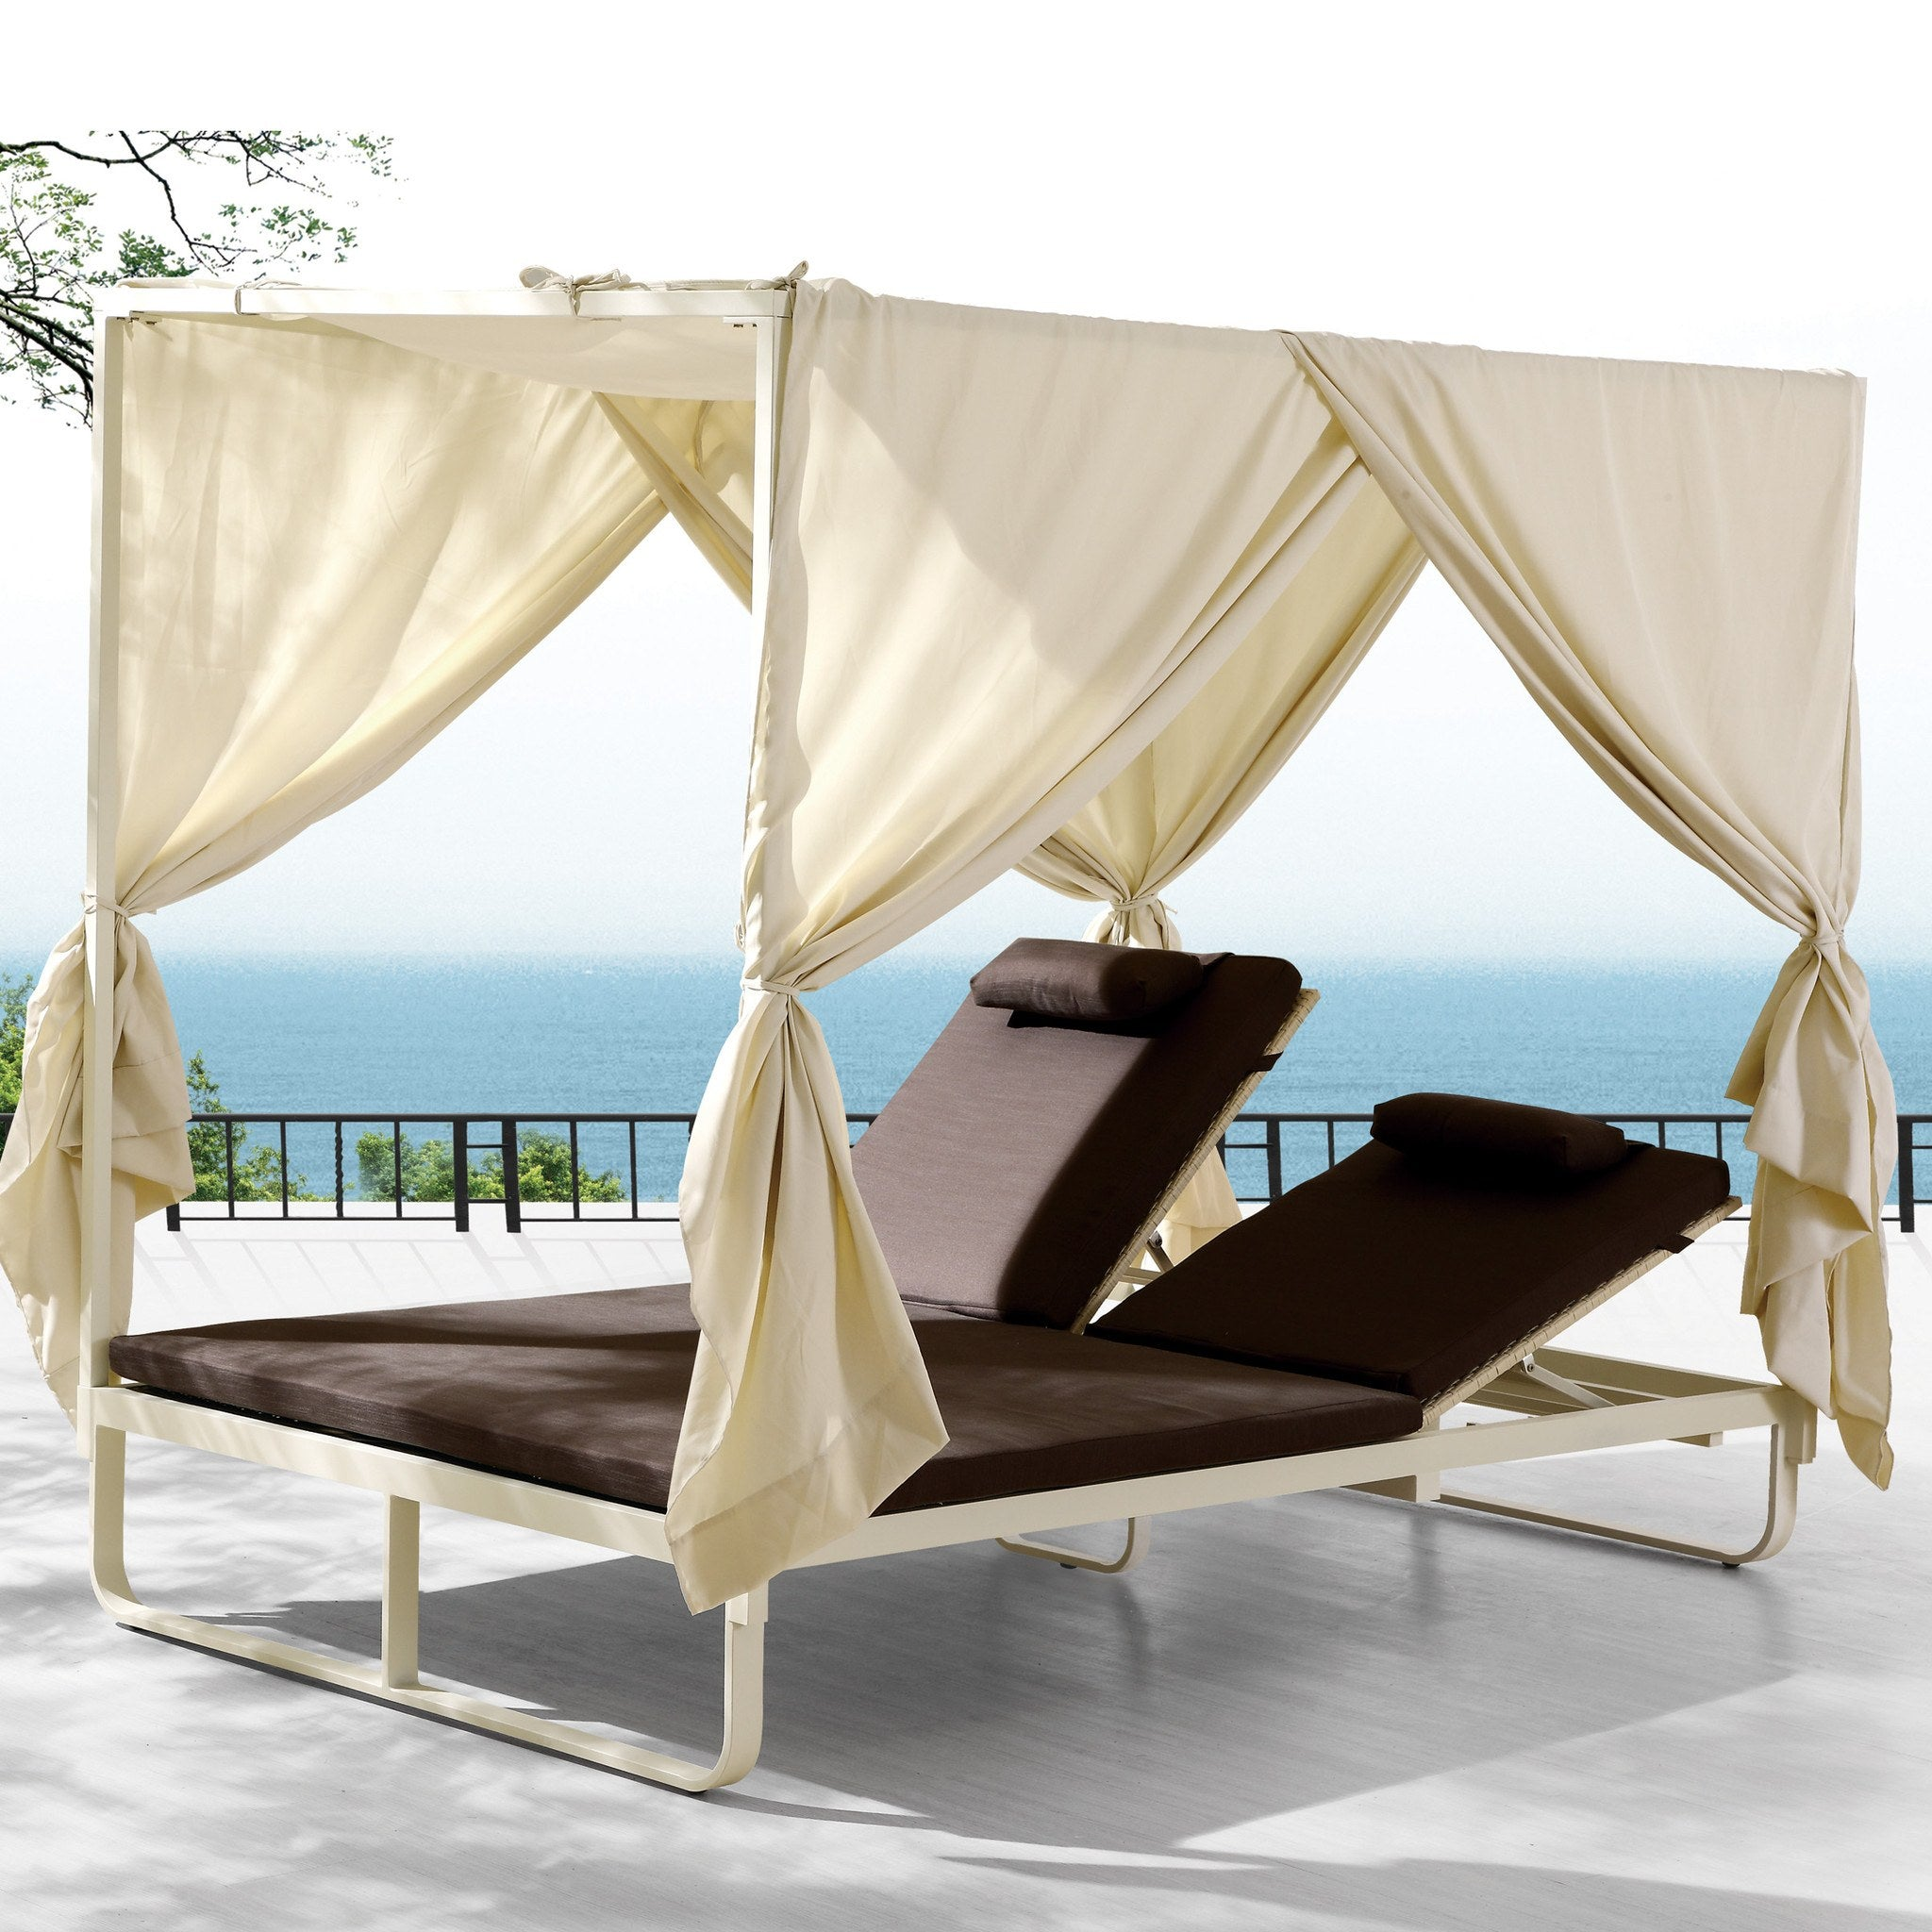 ORLANDO Double Chaise Lounge w/Canopy  sc 1 st  TB Outdoor Design & ORLANDO Double Chaise Lounge w/Canopy | TB Outdoor Design ...